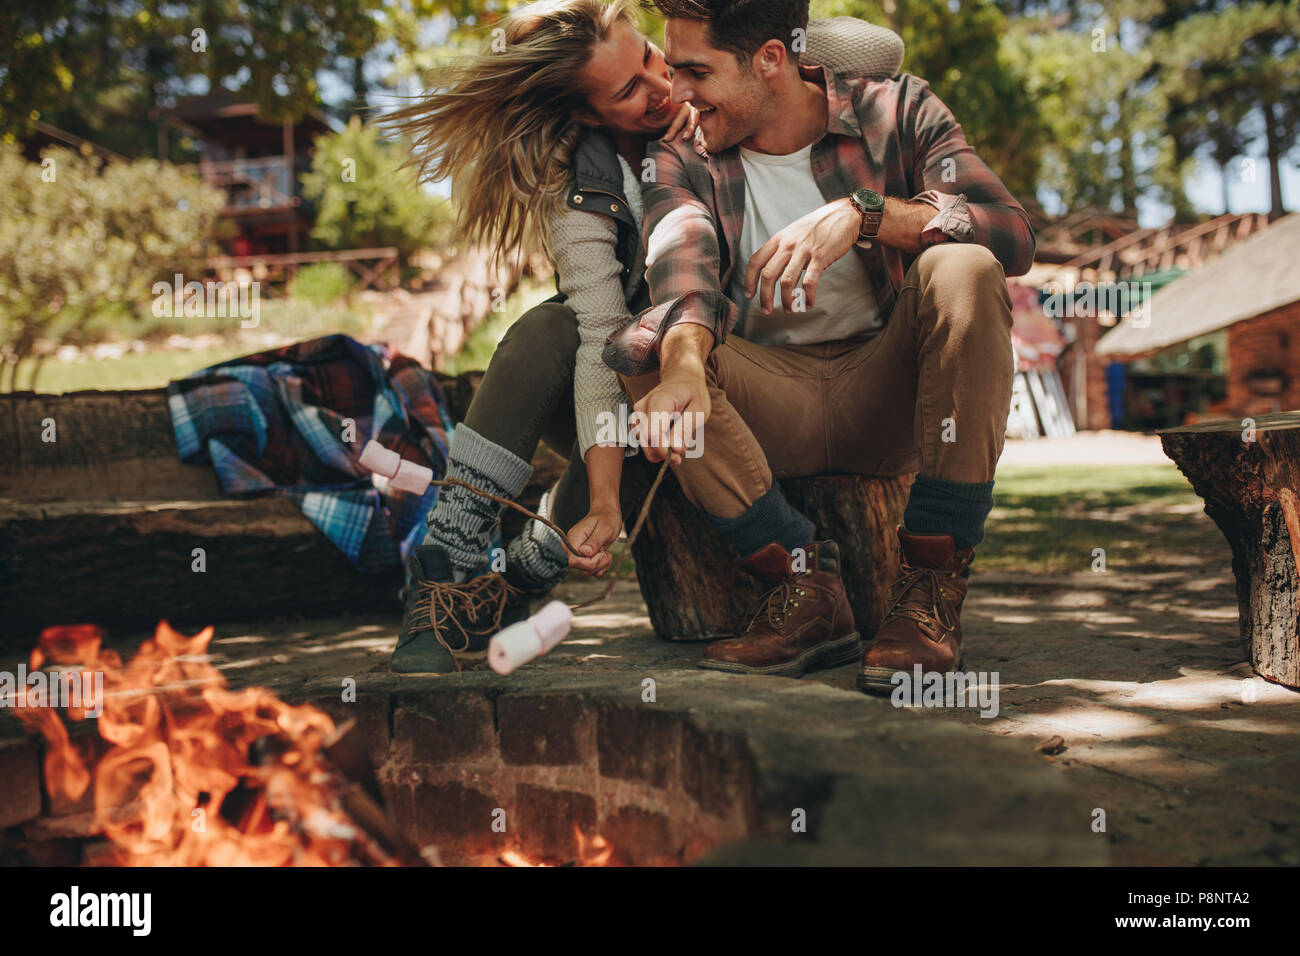 Romantic couple sitting by bonfire and roasting marshmallows on fire. Beautiful couple in love enjoying at campsite. - Stock Image